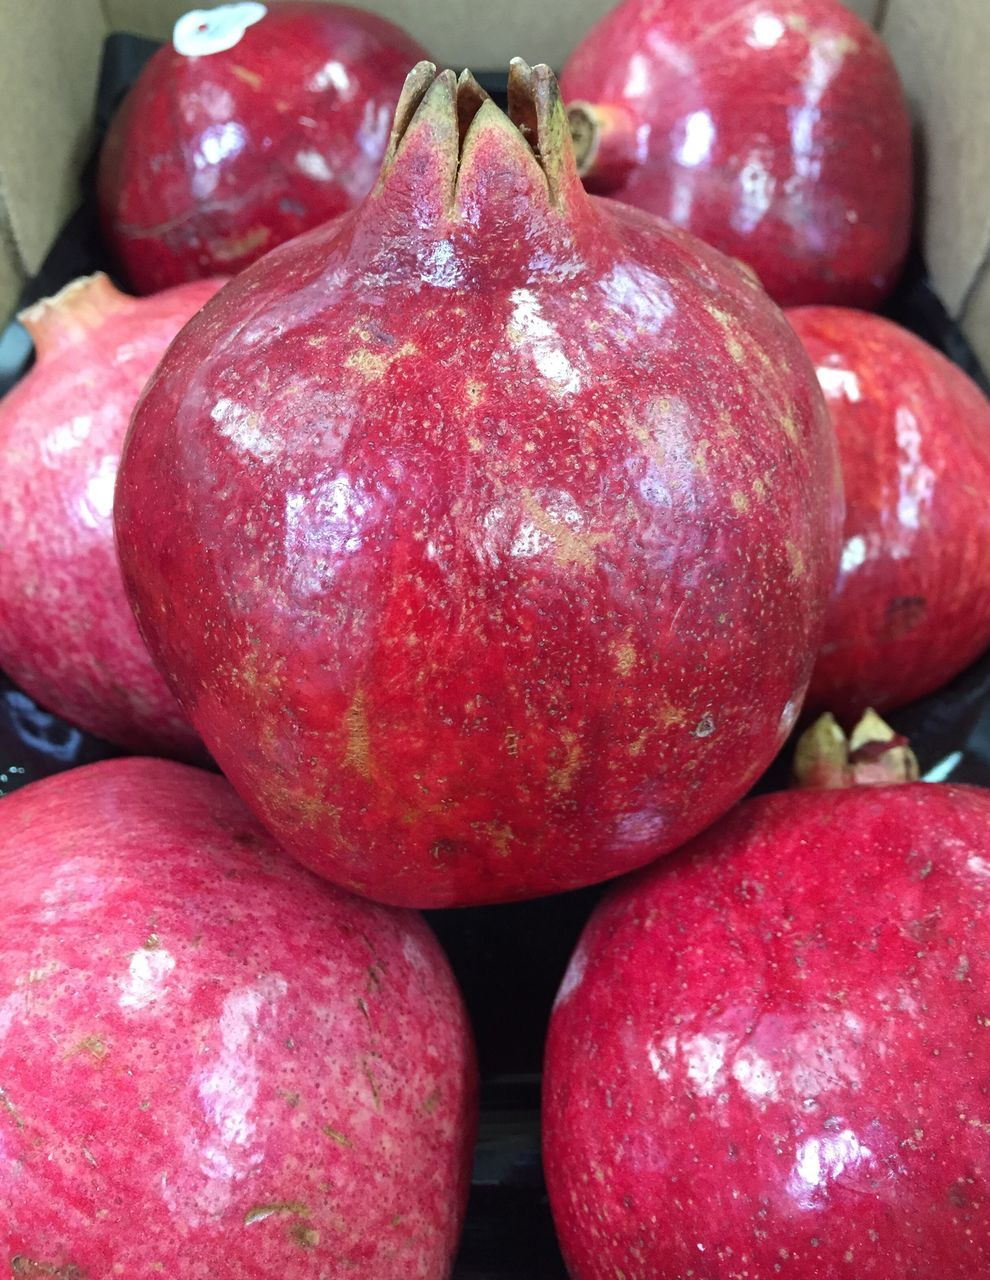 fruit, food and drink, red, healthy eating, food, freshness, close-up, apple - fruit, no people, day, healthy lifestyle, pomegranate, indoors